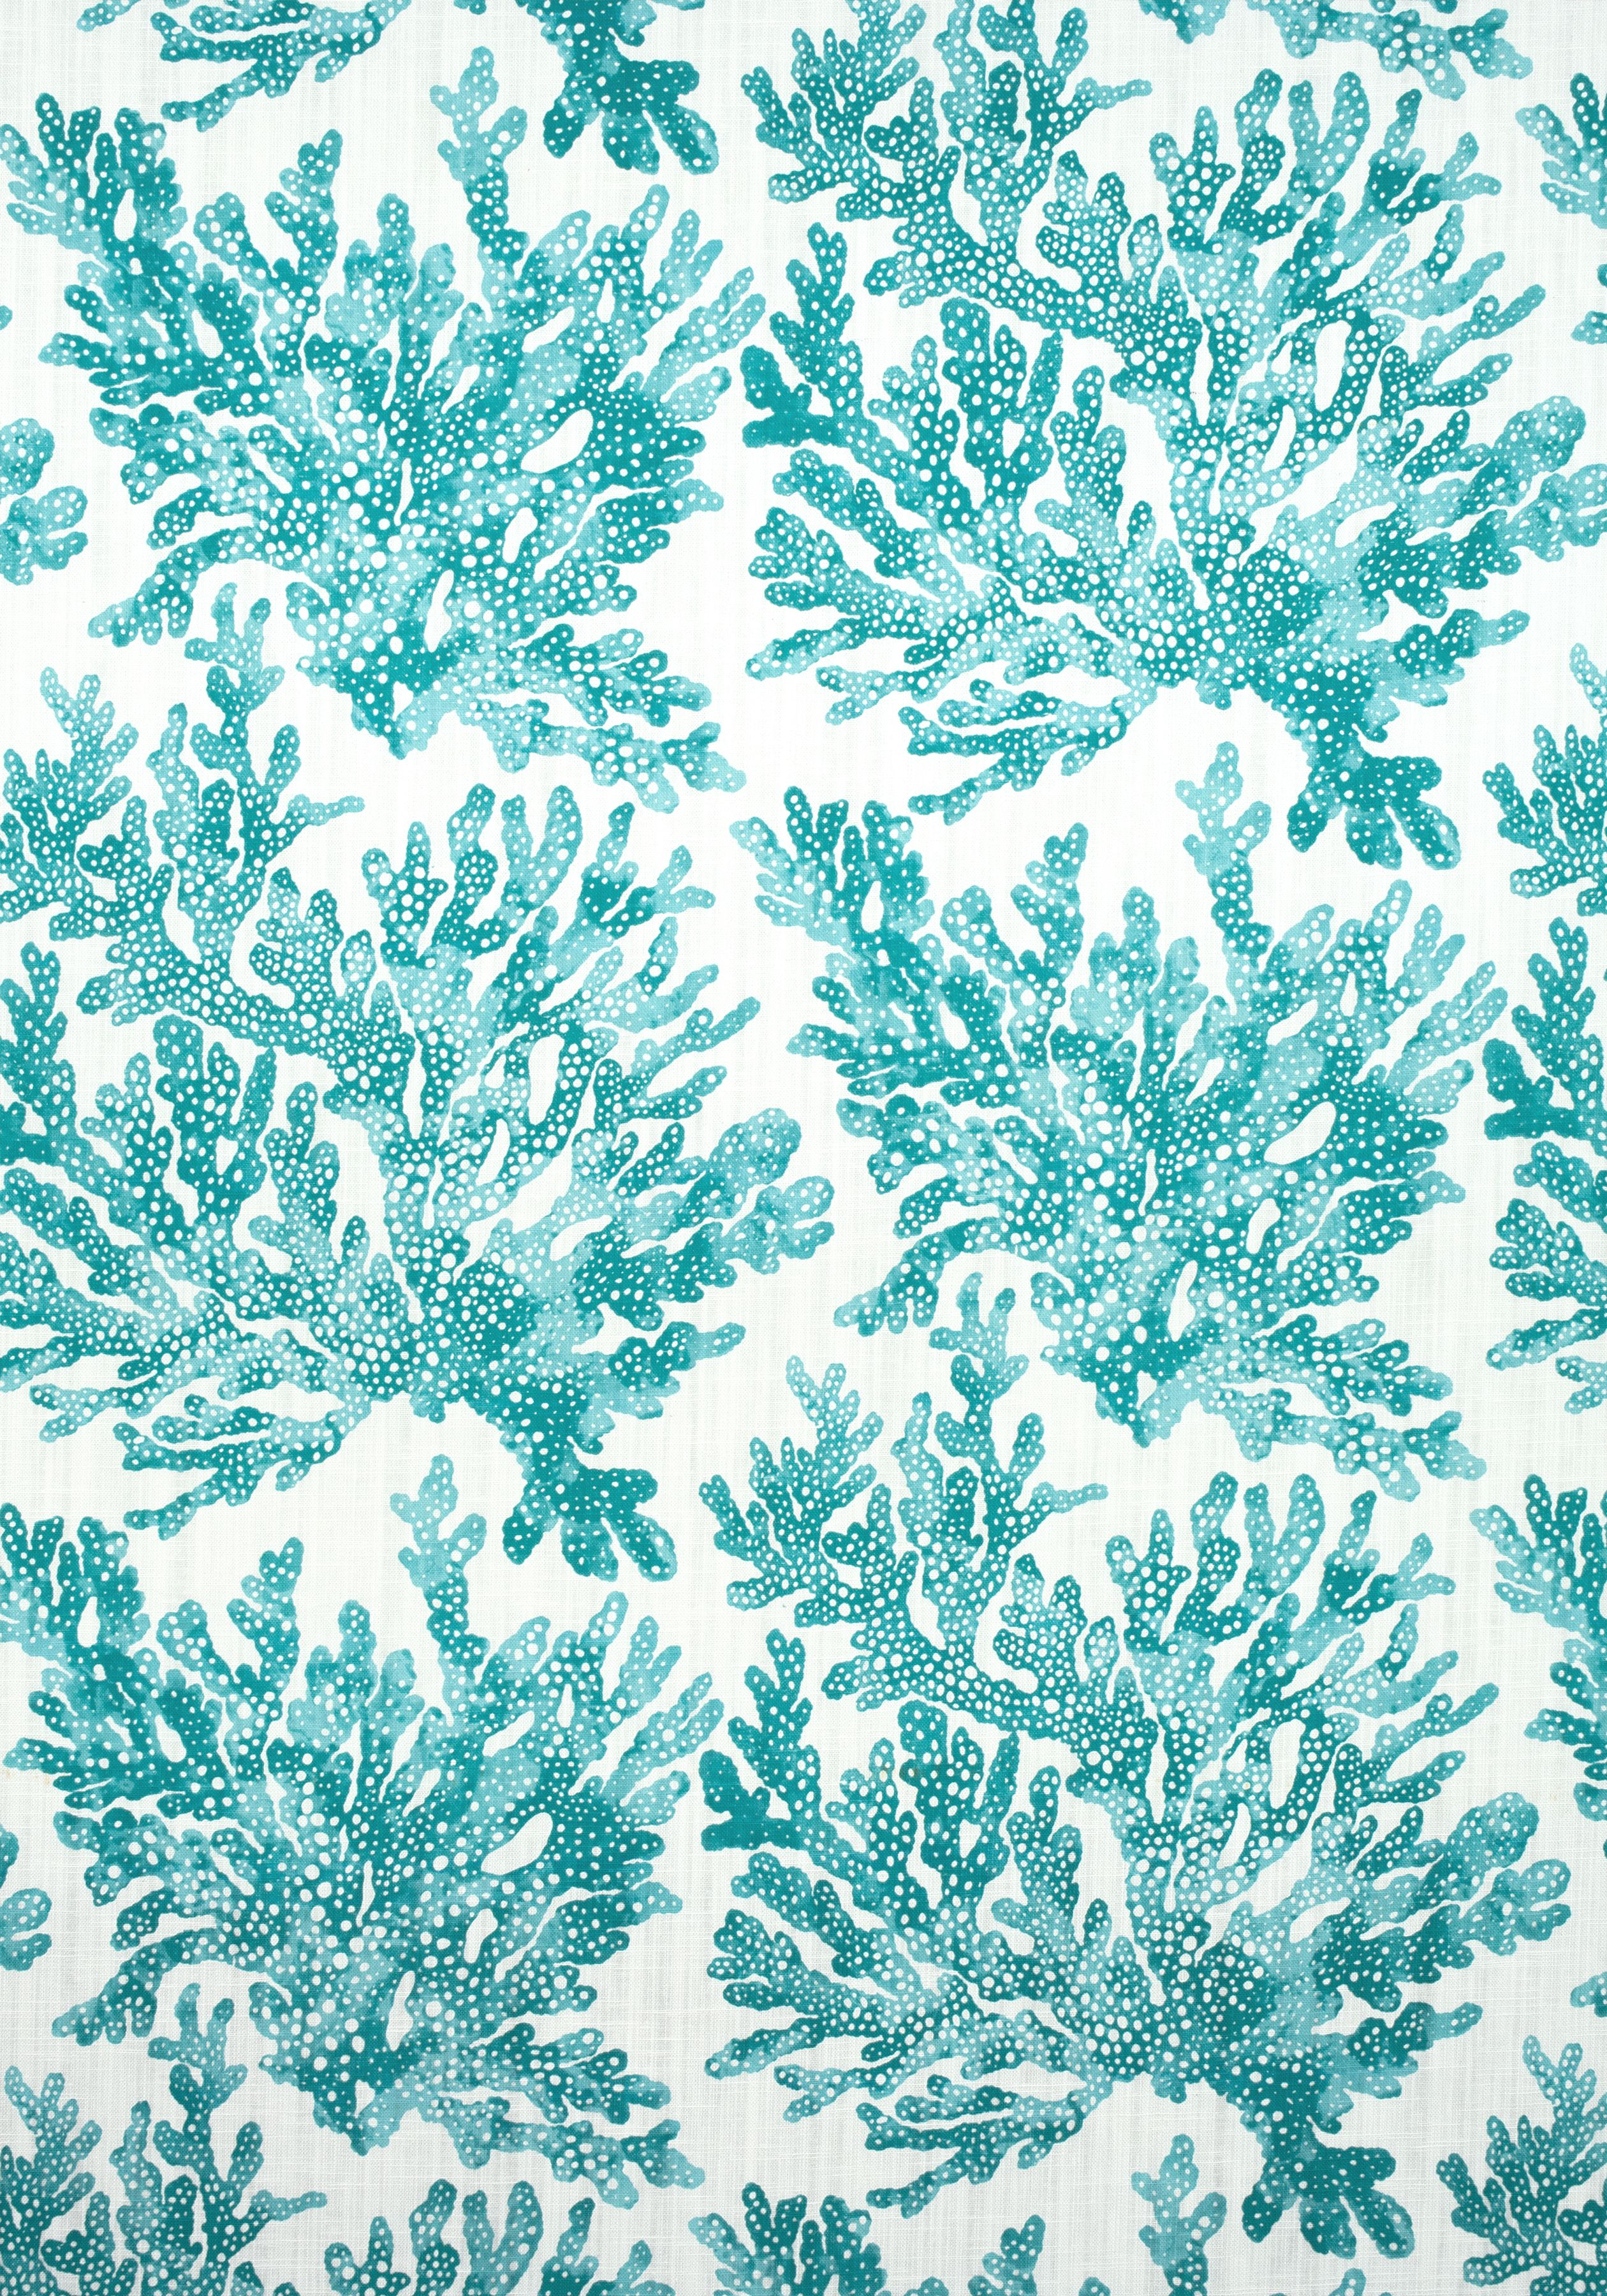 MARINE CORAL, Turquoise, F910121, Collection Tropics from